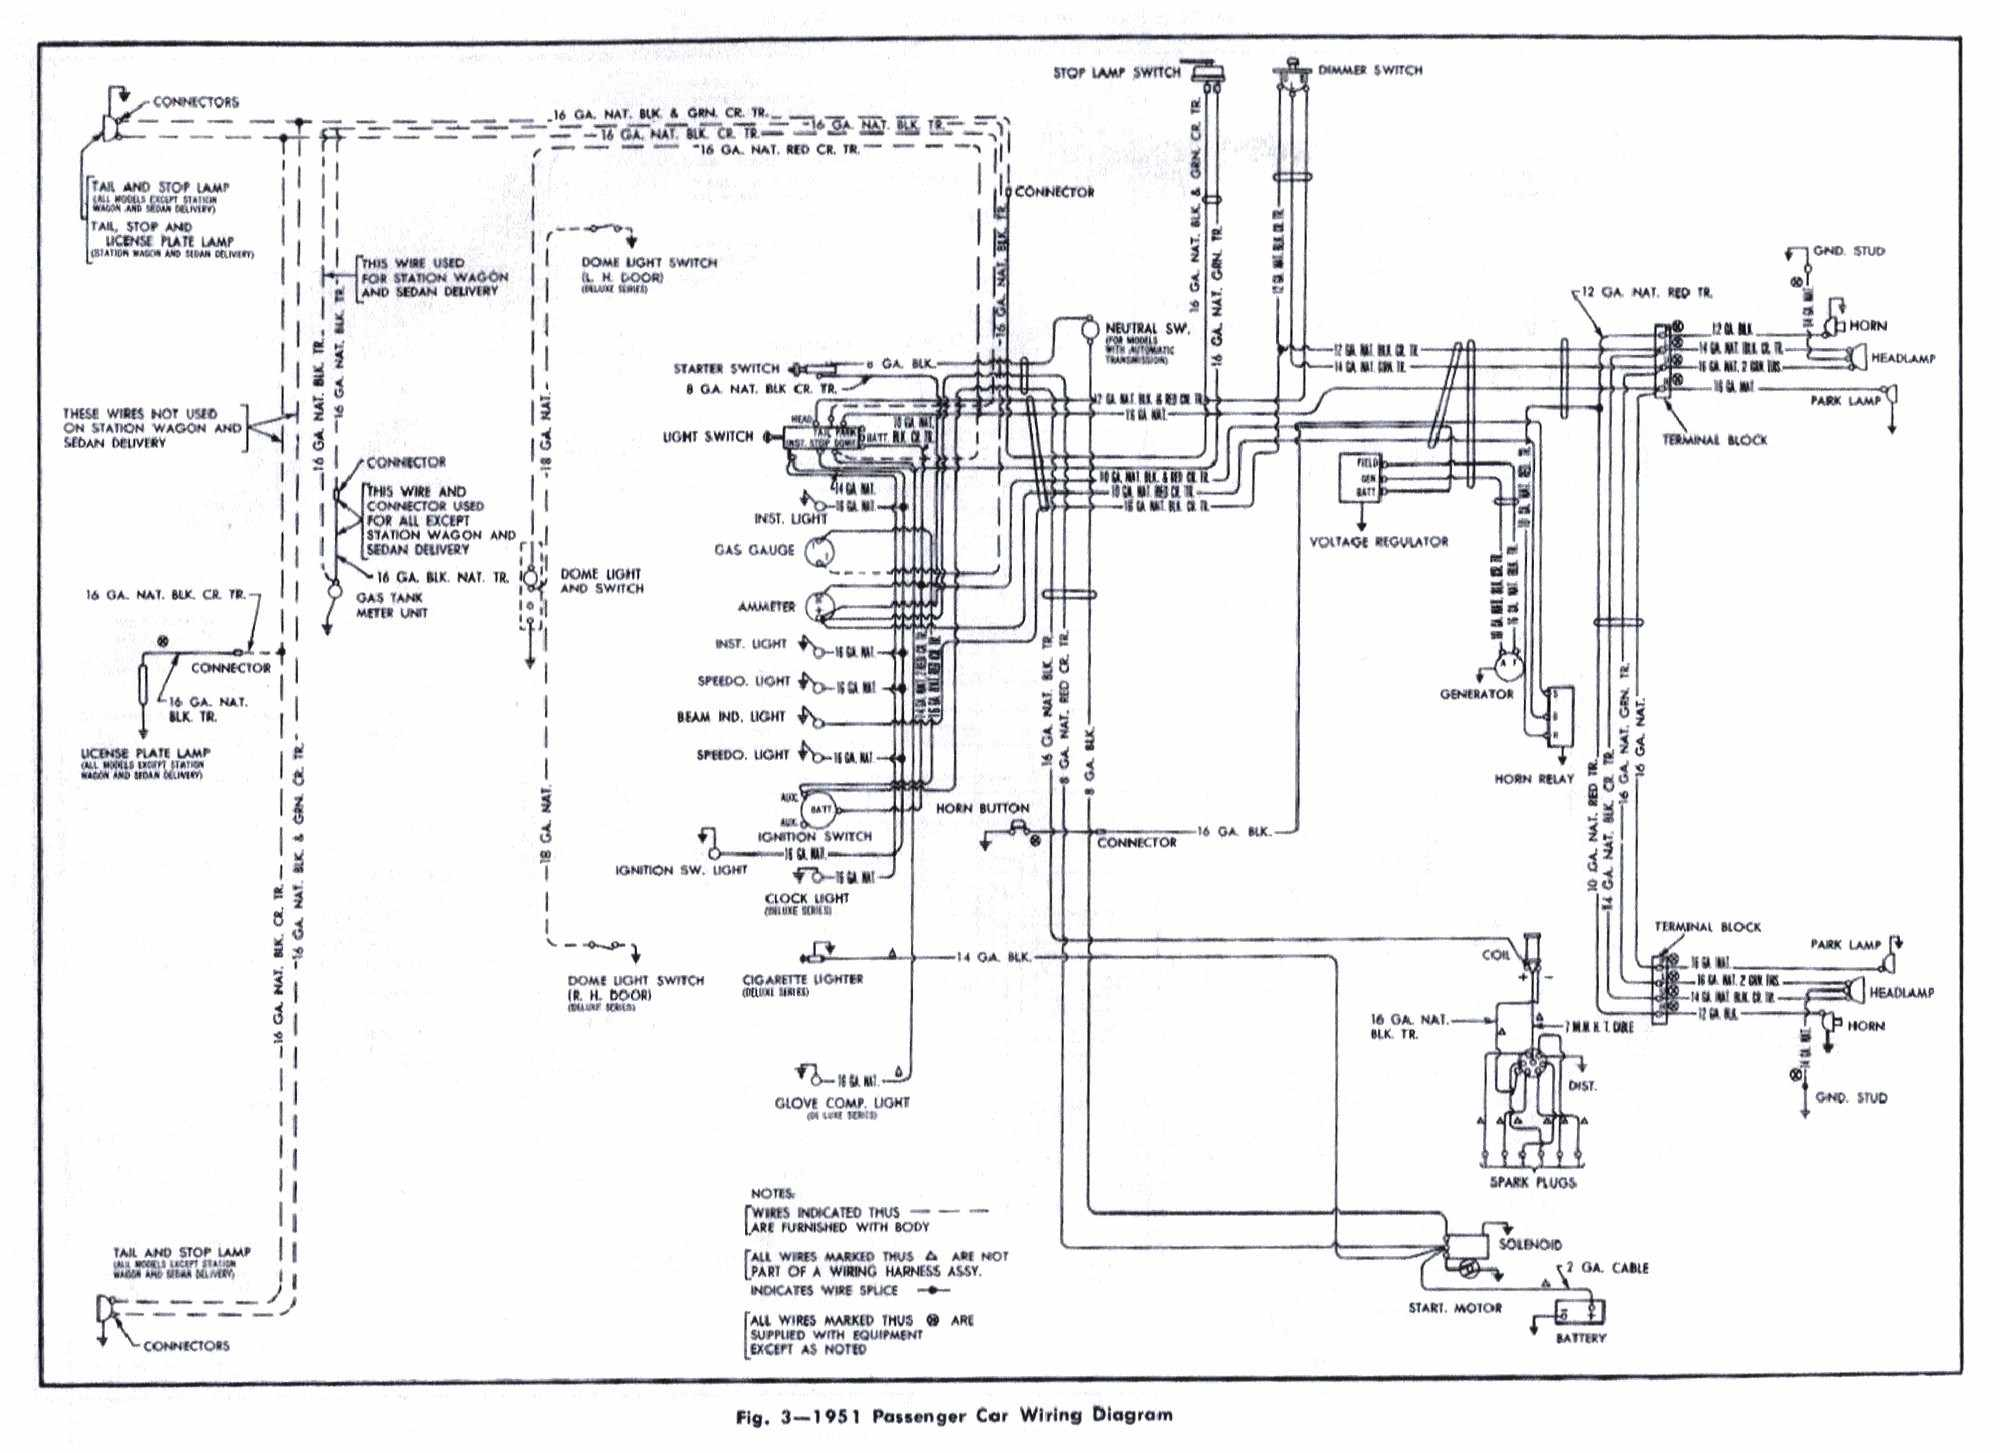 wiring harness builder with International Scout Wiring Schematic on Universal Turn Signal Switch Wiring Diagram moreover 1964 Ford Falcon Wiring Harness moreover Lincoln Sa 200 Wiring Schematic moreover Easy Wiring Diagram likewise Federal Signal Siren Wiring Diagram For As710.